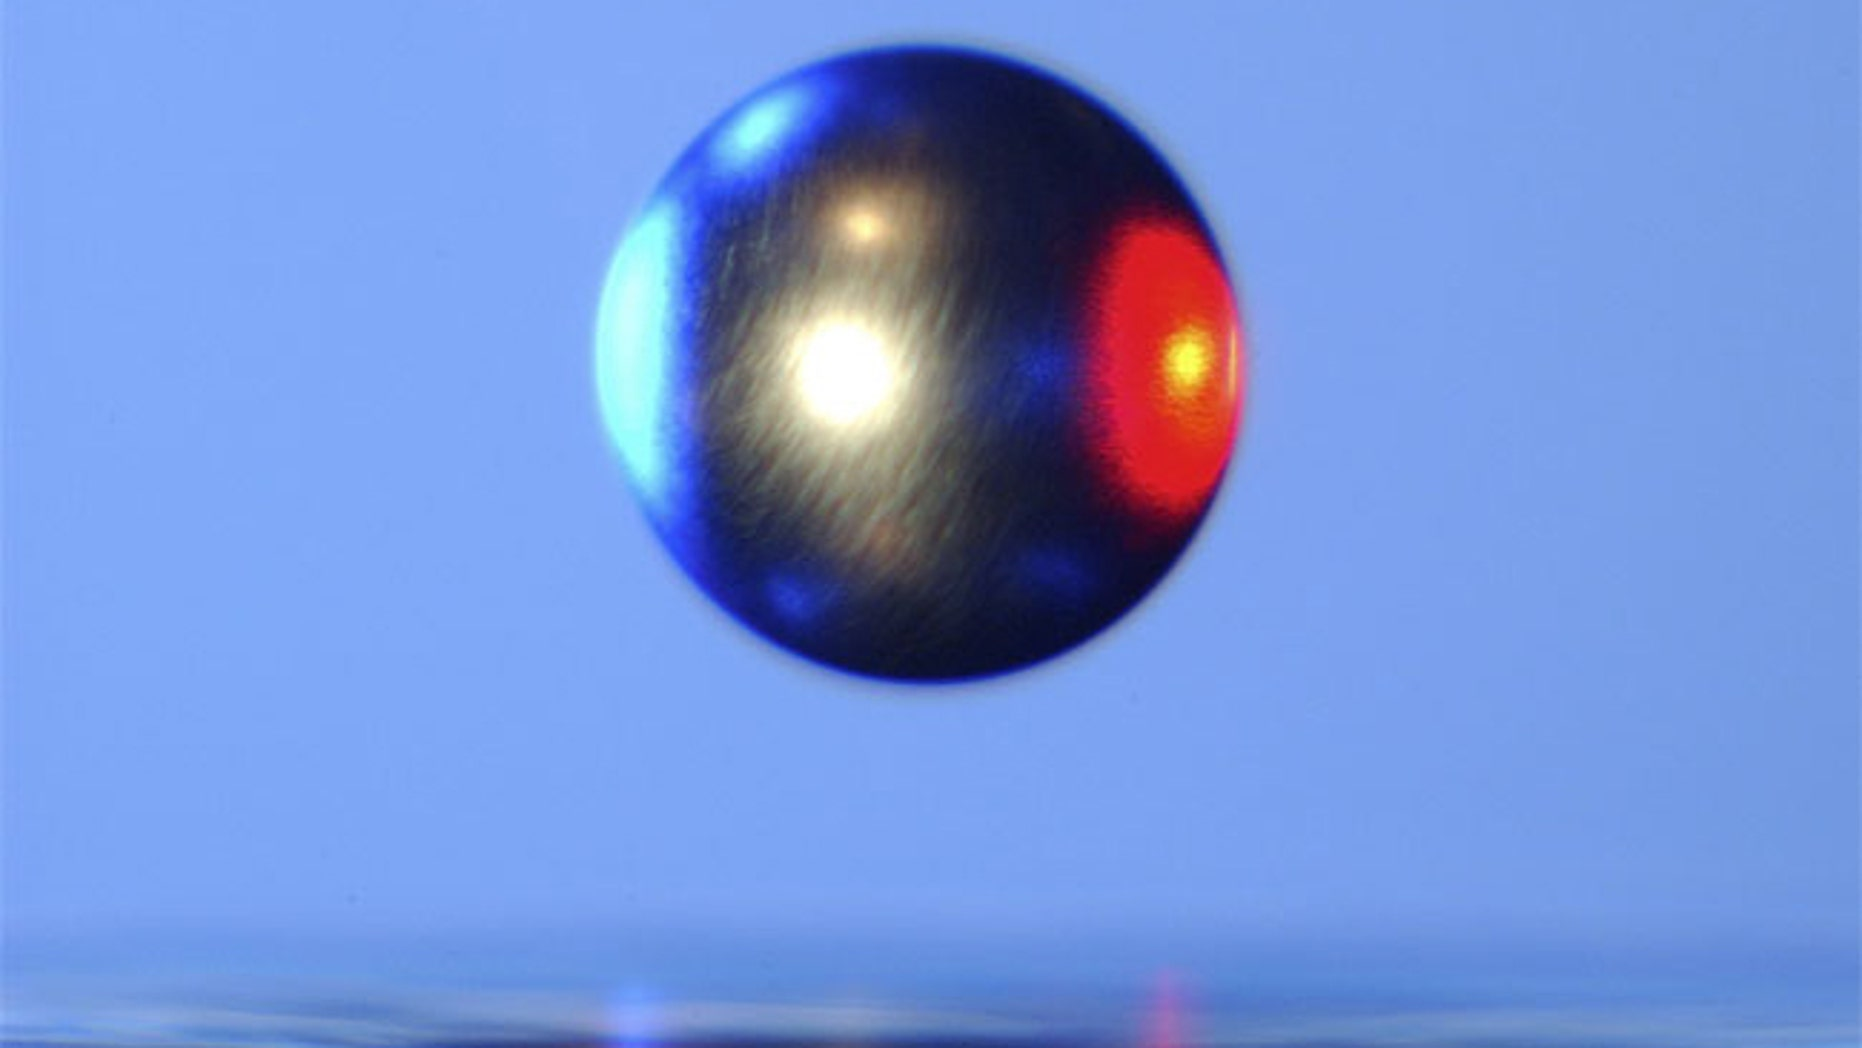 Inside a NASA Electrostatic Levitator, a ball of metal is suspended in mid-air by static electricity.